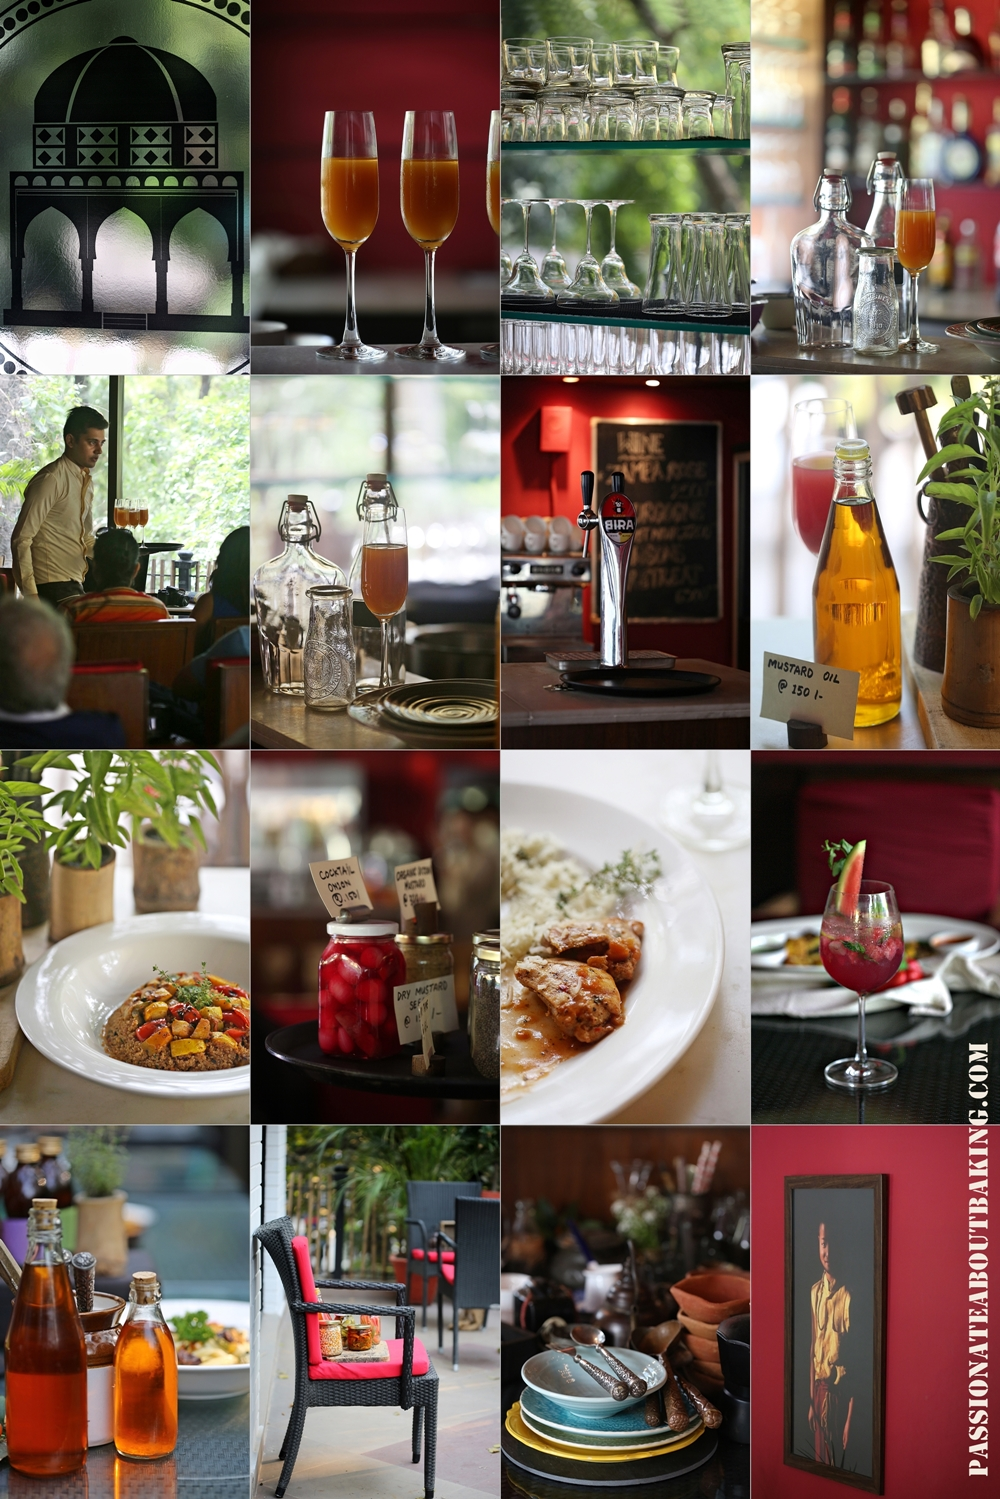 Food Styling Workshop, The Lodi, New Delhi